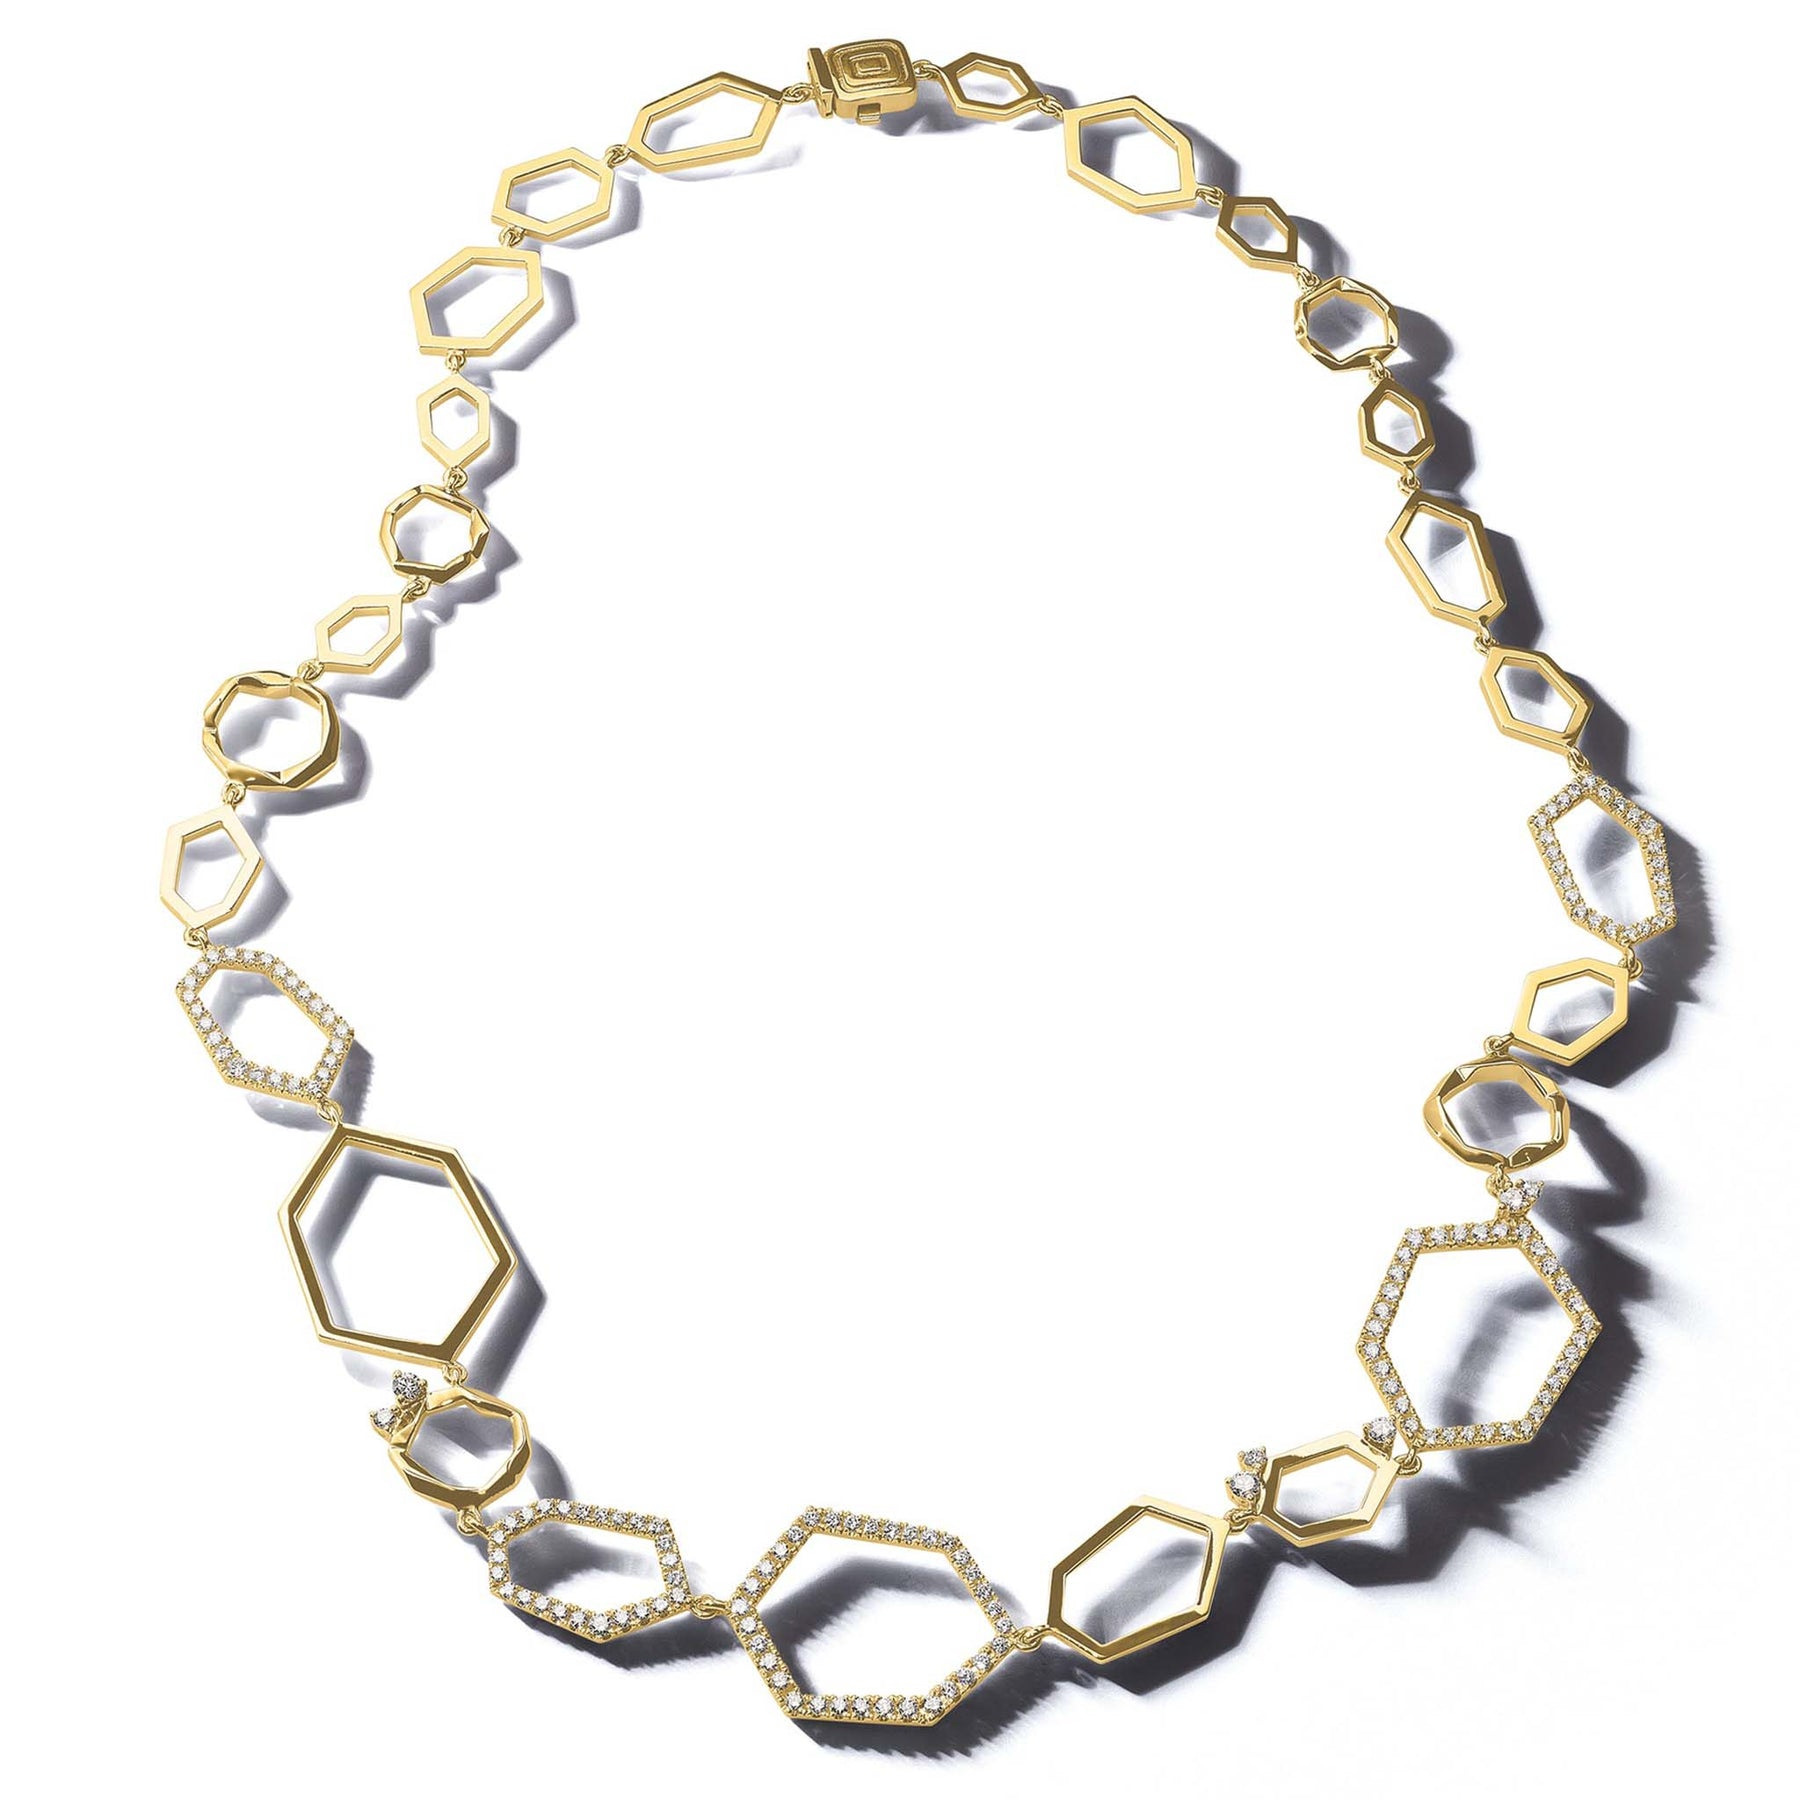 Jackson-Diamond-Link-Collar-Necklace_18k Yellow Gold